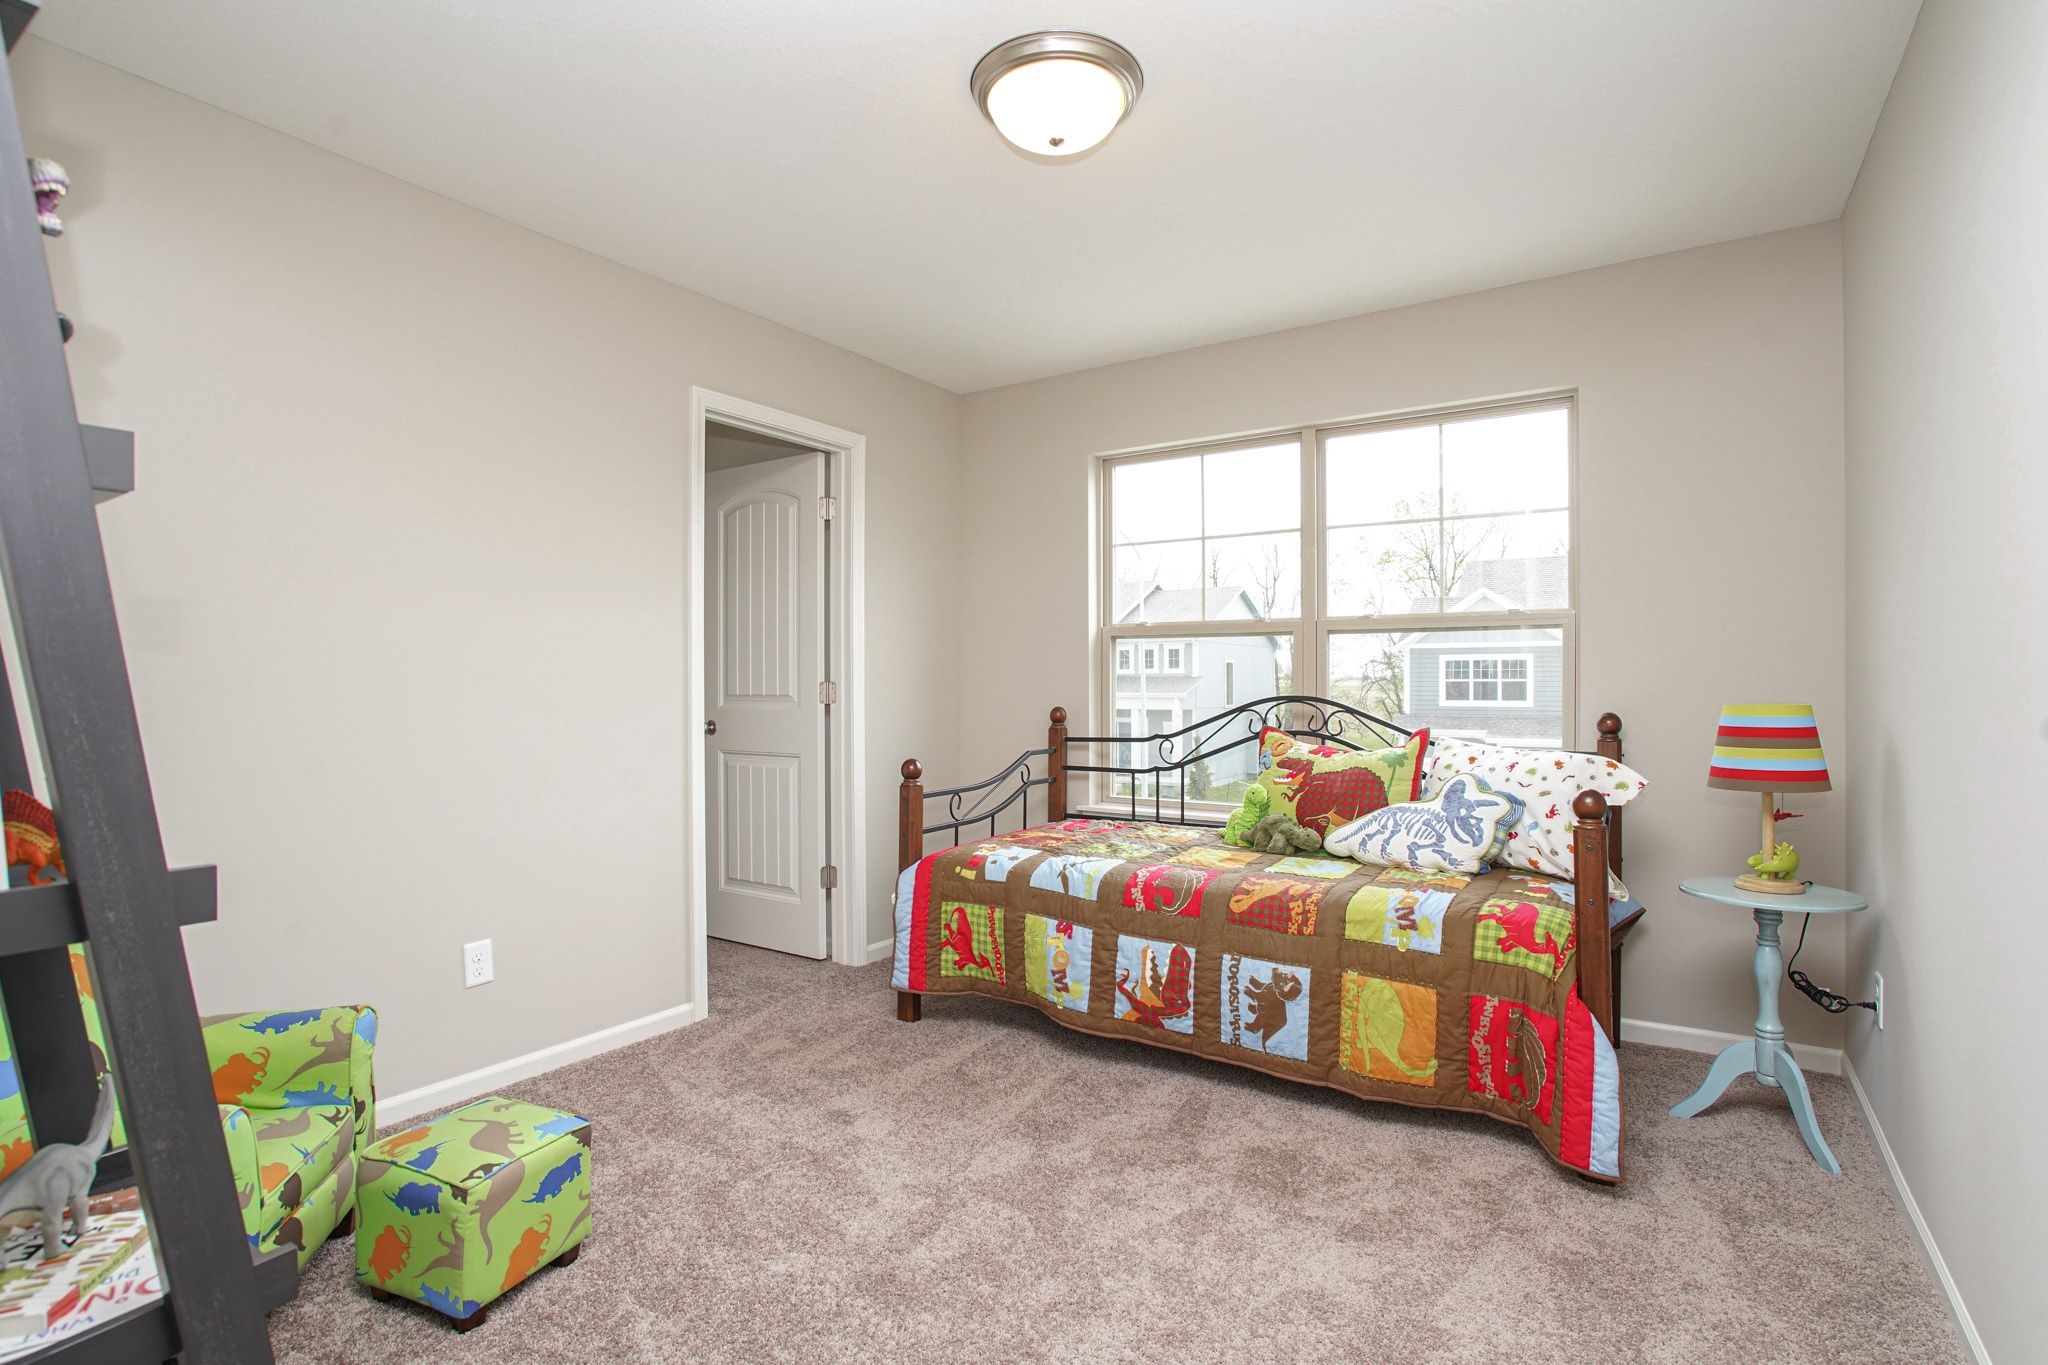 Bedroom featured in the Waterford - IA By Summit Homes in Des Moines, IA